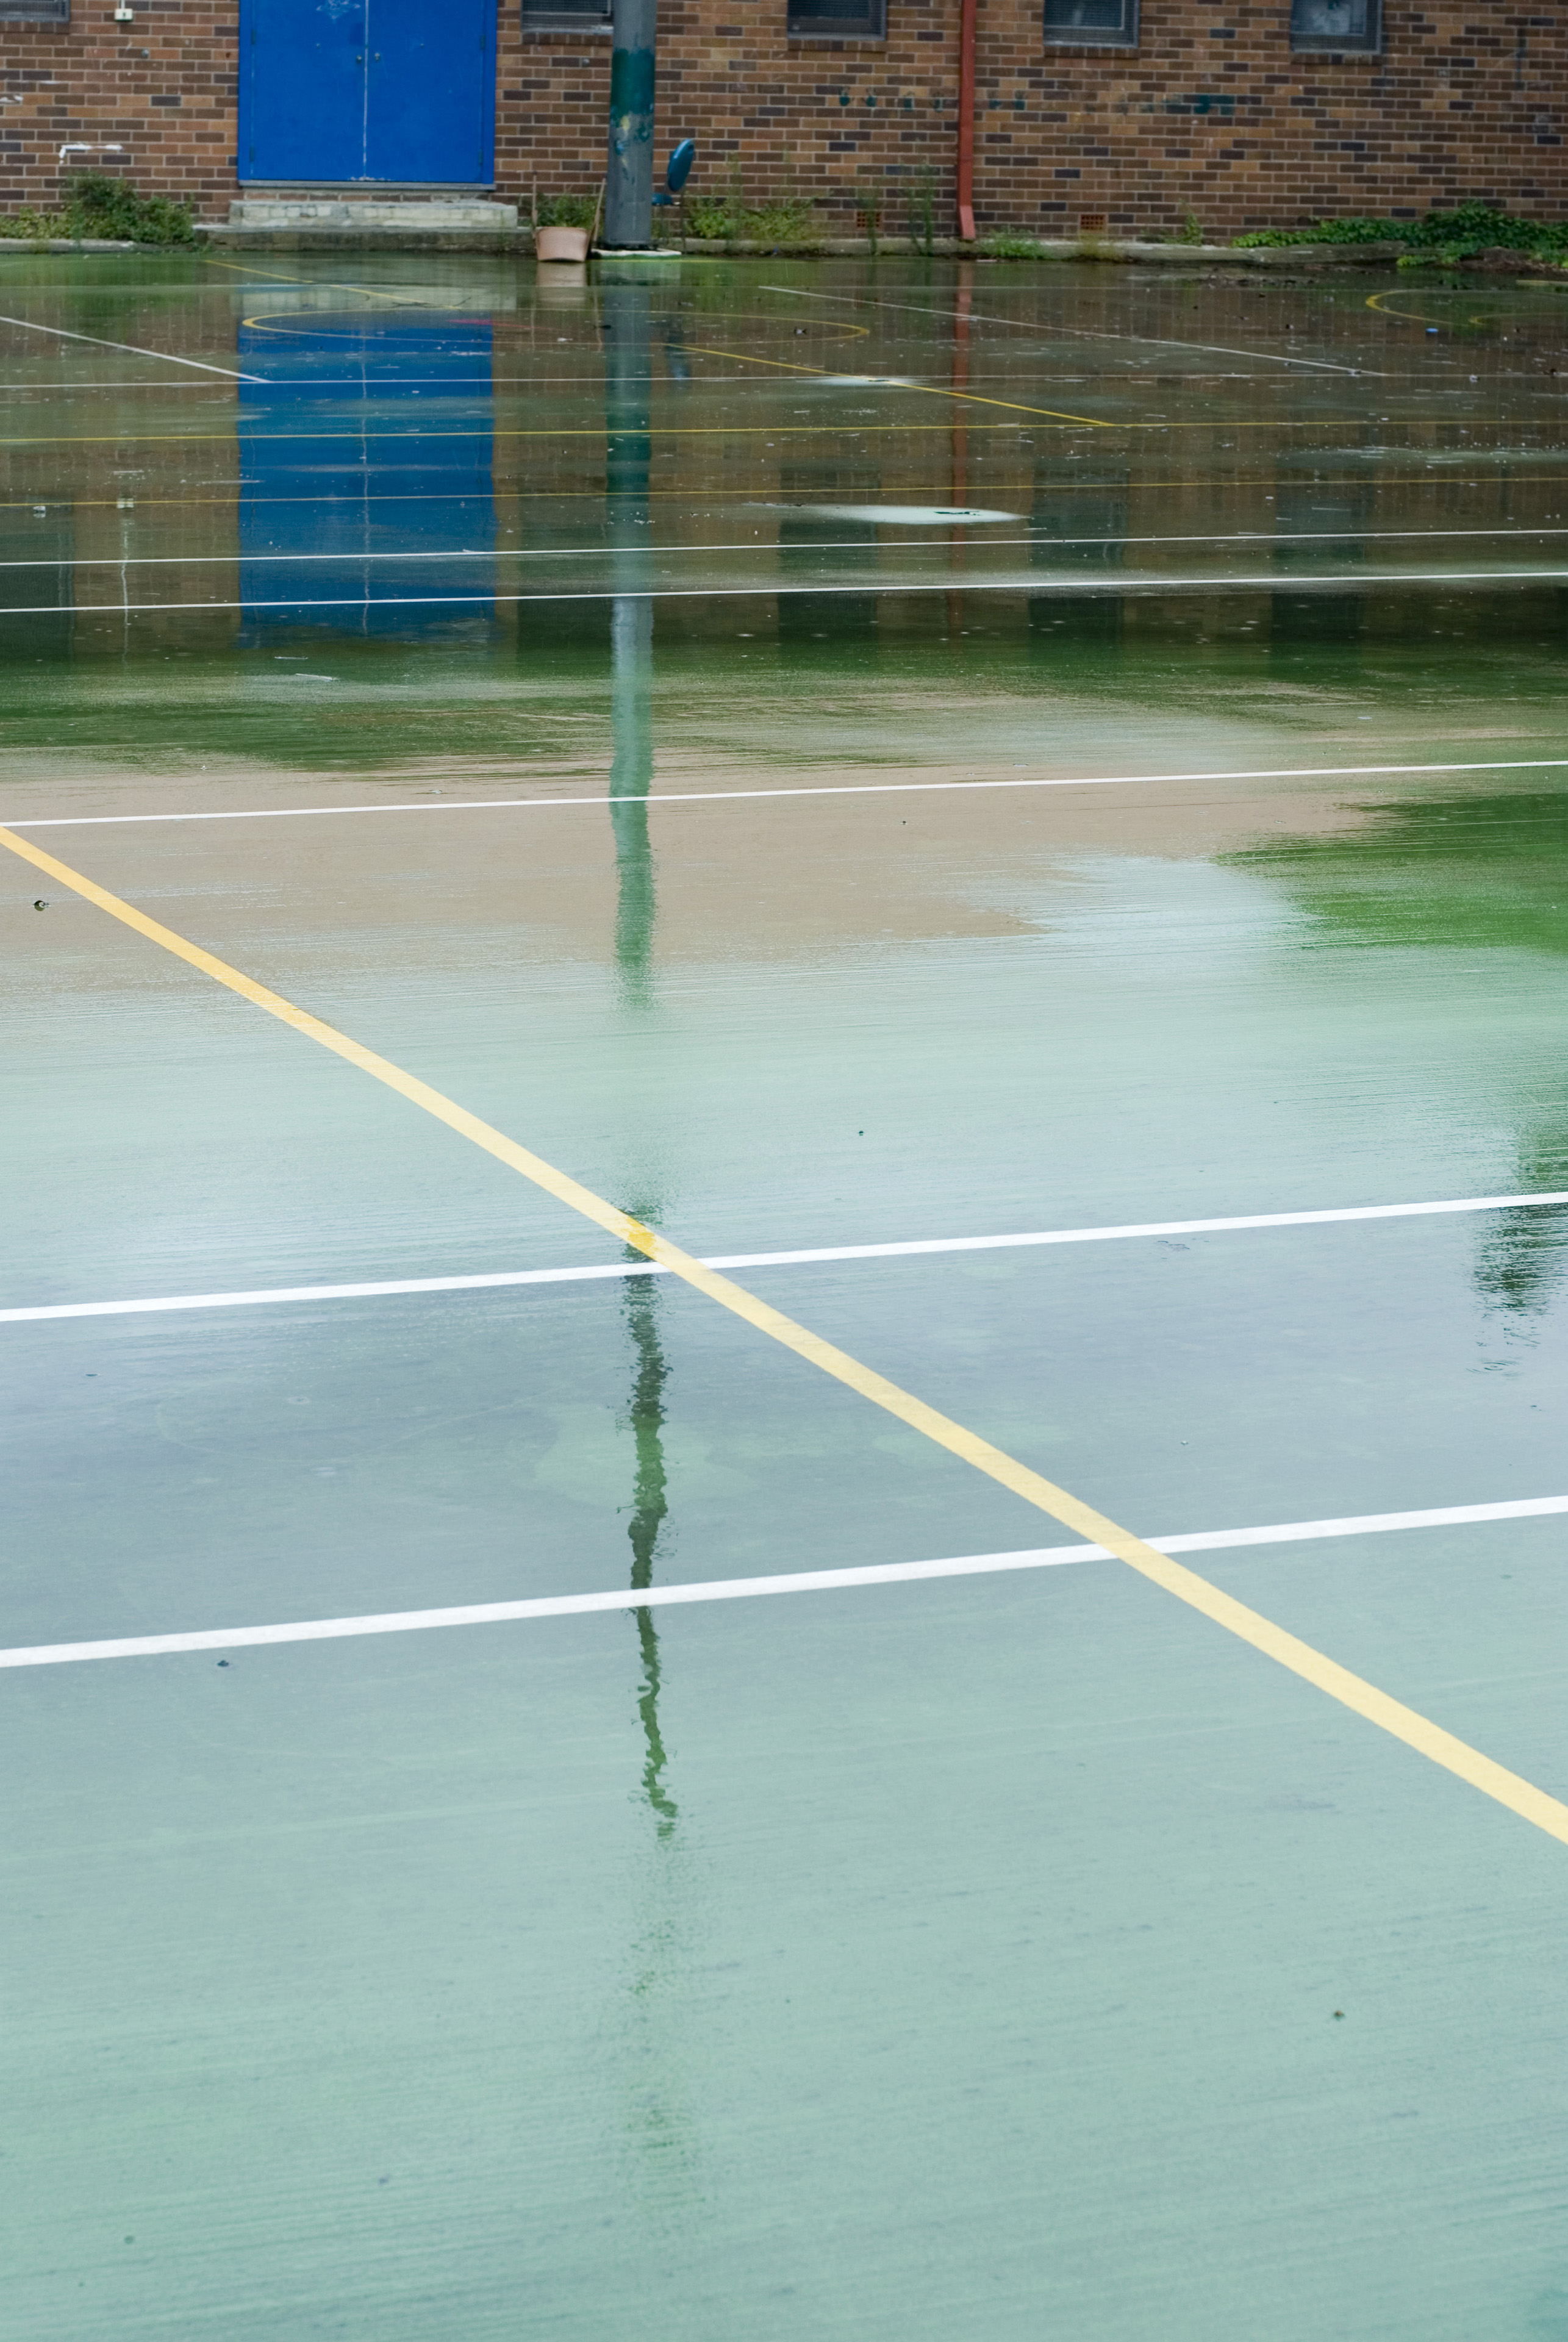 Wet green surface of an all-weather sports court with reflections of the poles and painted lines in an urban or school environment